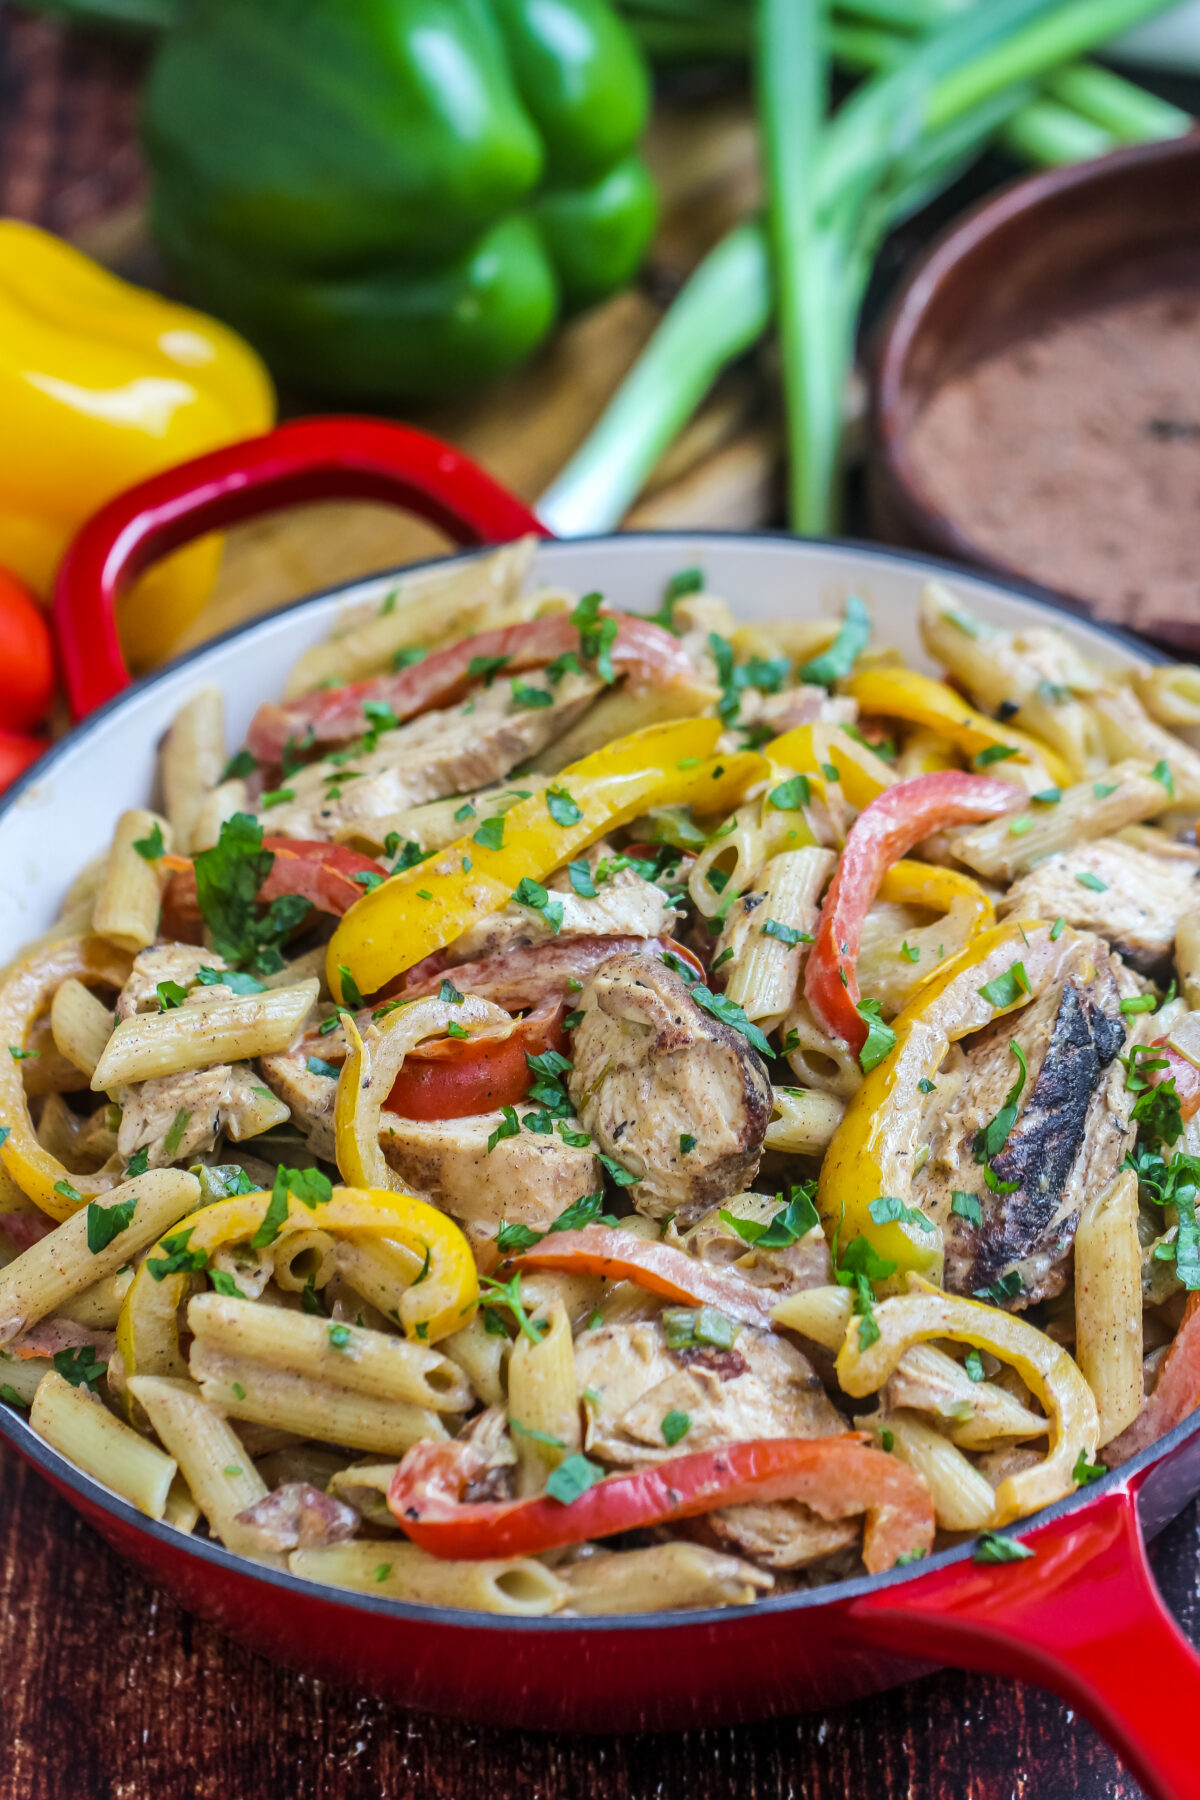 This Jamaican jerk chicken pasta will have your family licking their plates, this Rasta Pasta Recipe is a Jamaican-inspired meal you'll love!